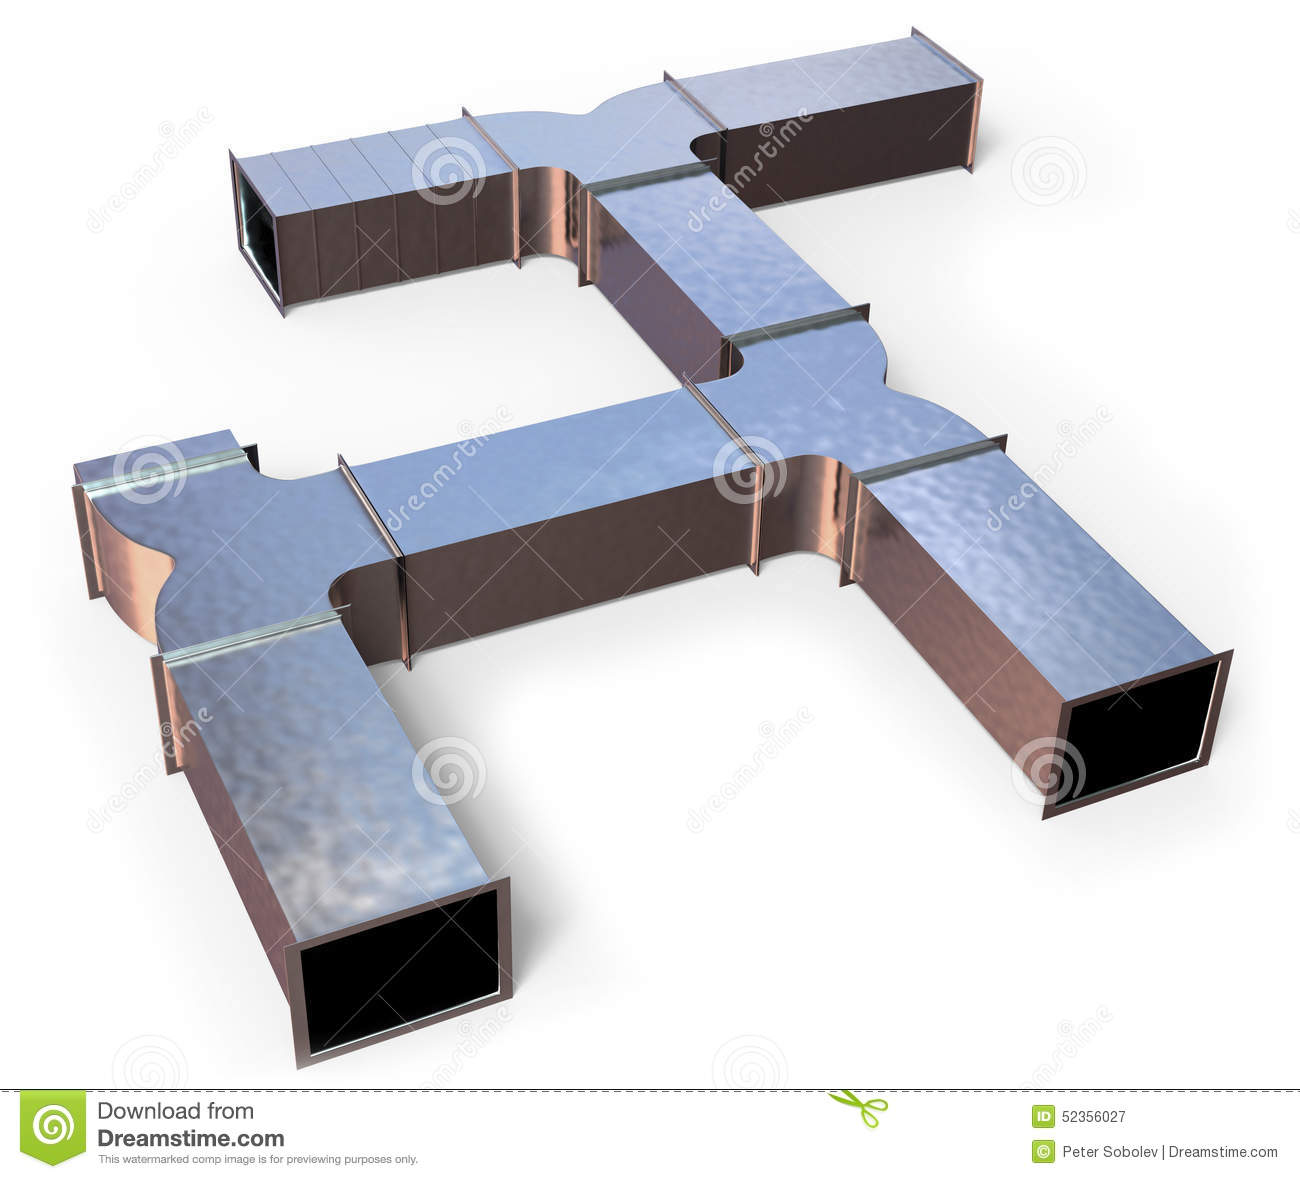 #83A328 Duct Work Stock Illustration Image: 52356027 Best 10403 Air Conditioner No Duct Work photos with 1300x1179 px on helpvideos.info - Air Conditioners, Air Coolers and more